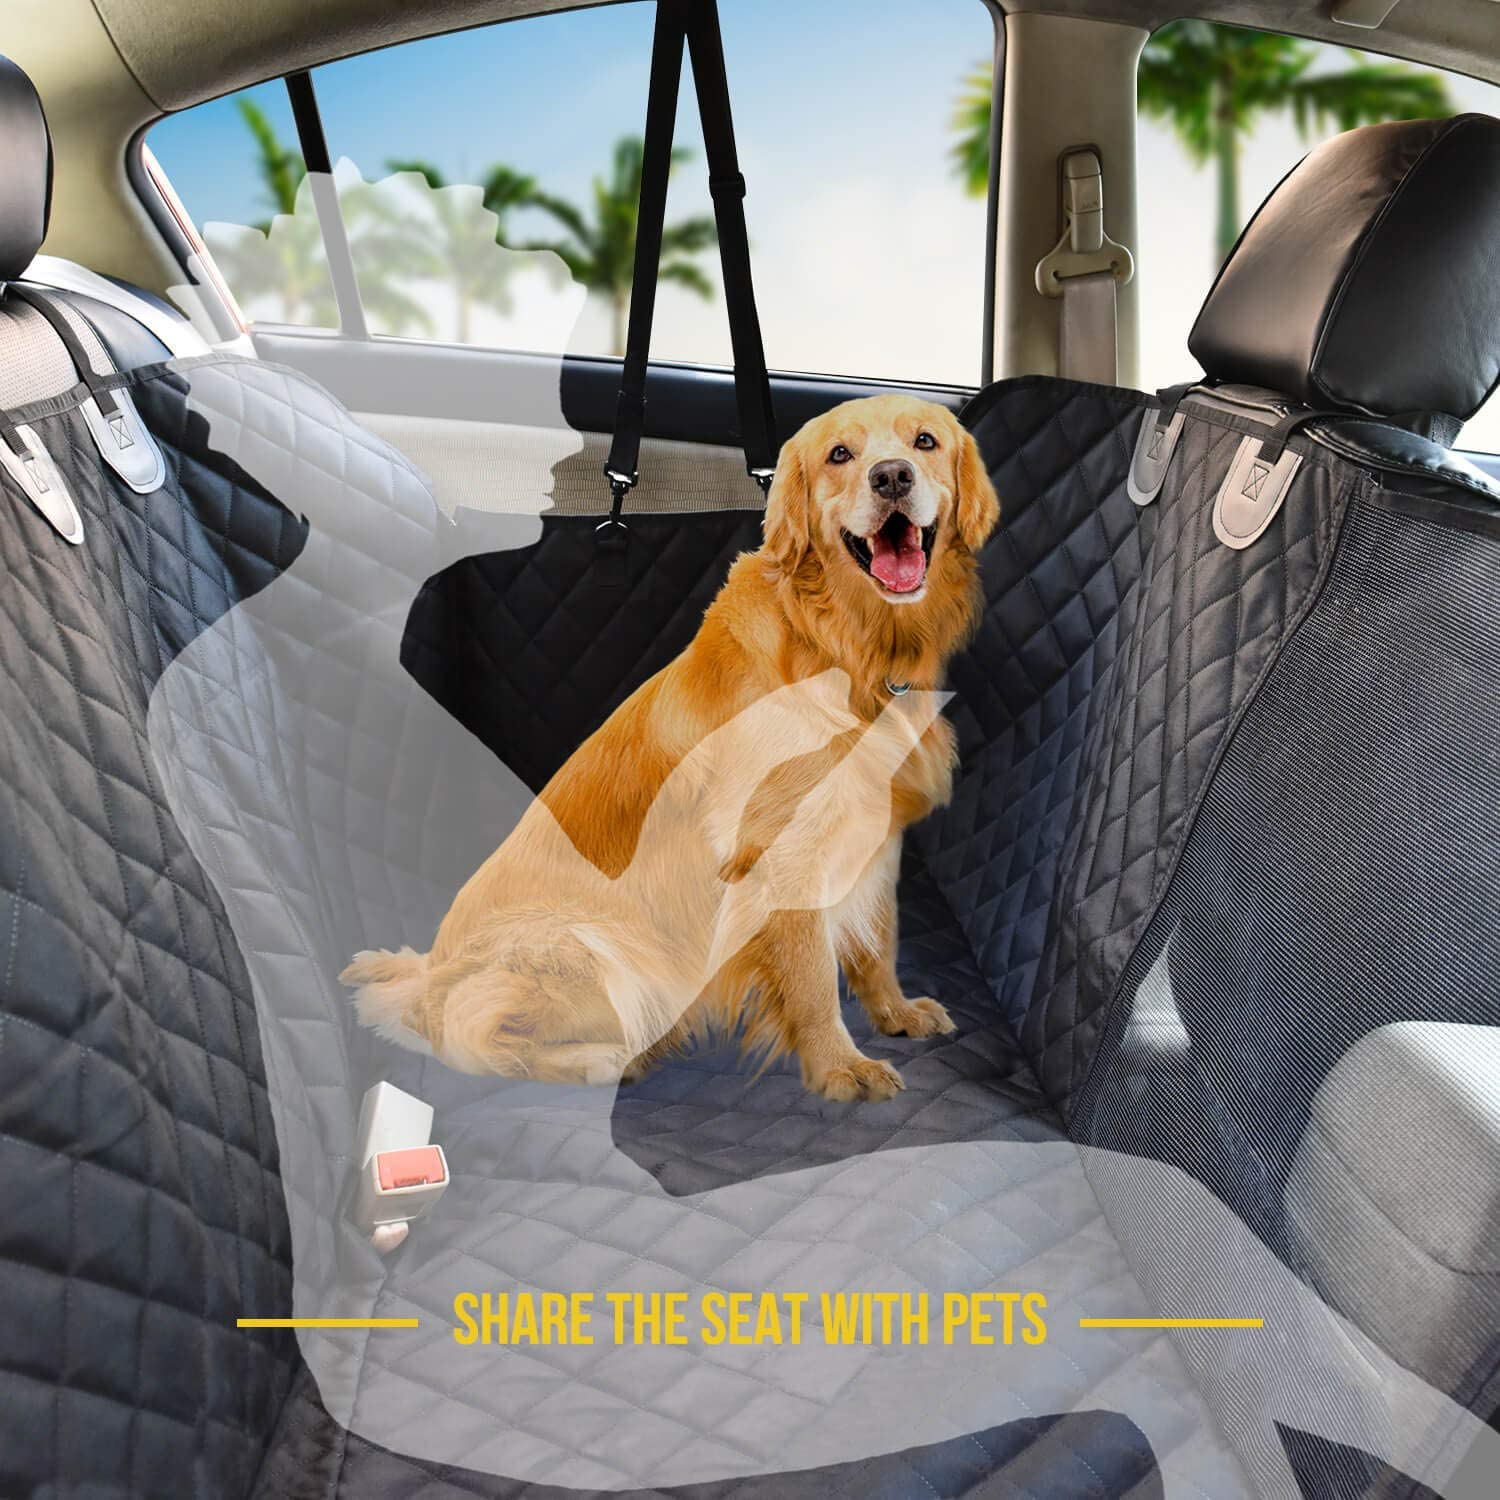 Dog Car Seat Cover Hammock With Mesh Window For Backseat - Forevermily